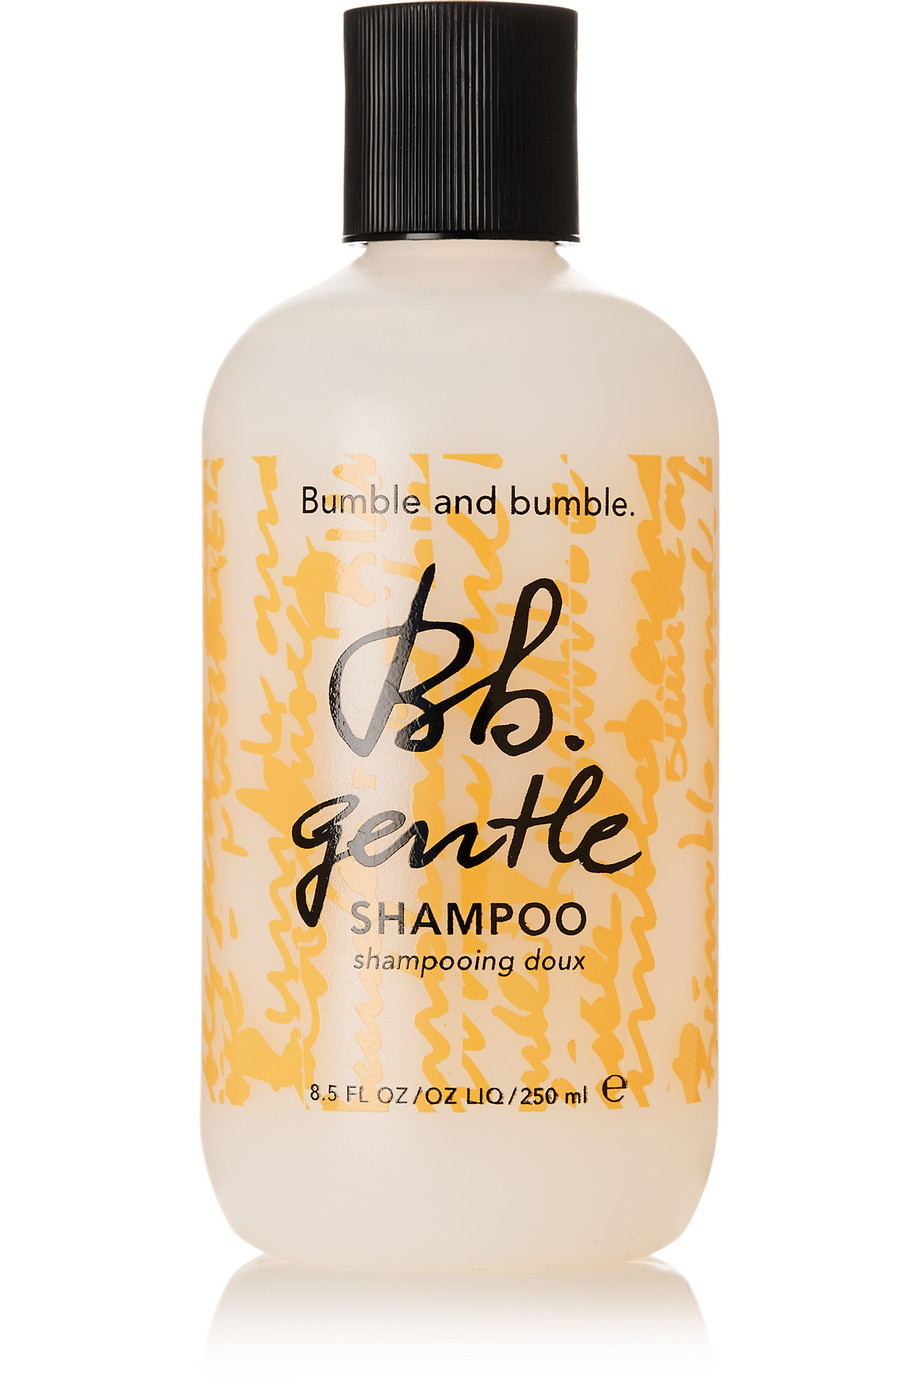 Gentle Shampoo, 250ml